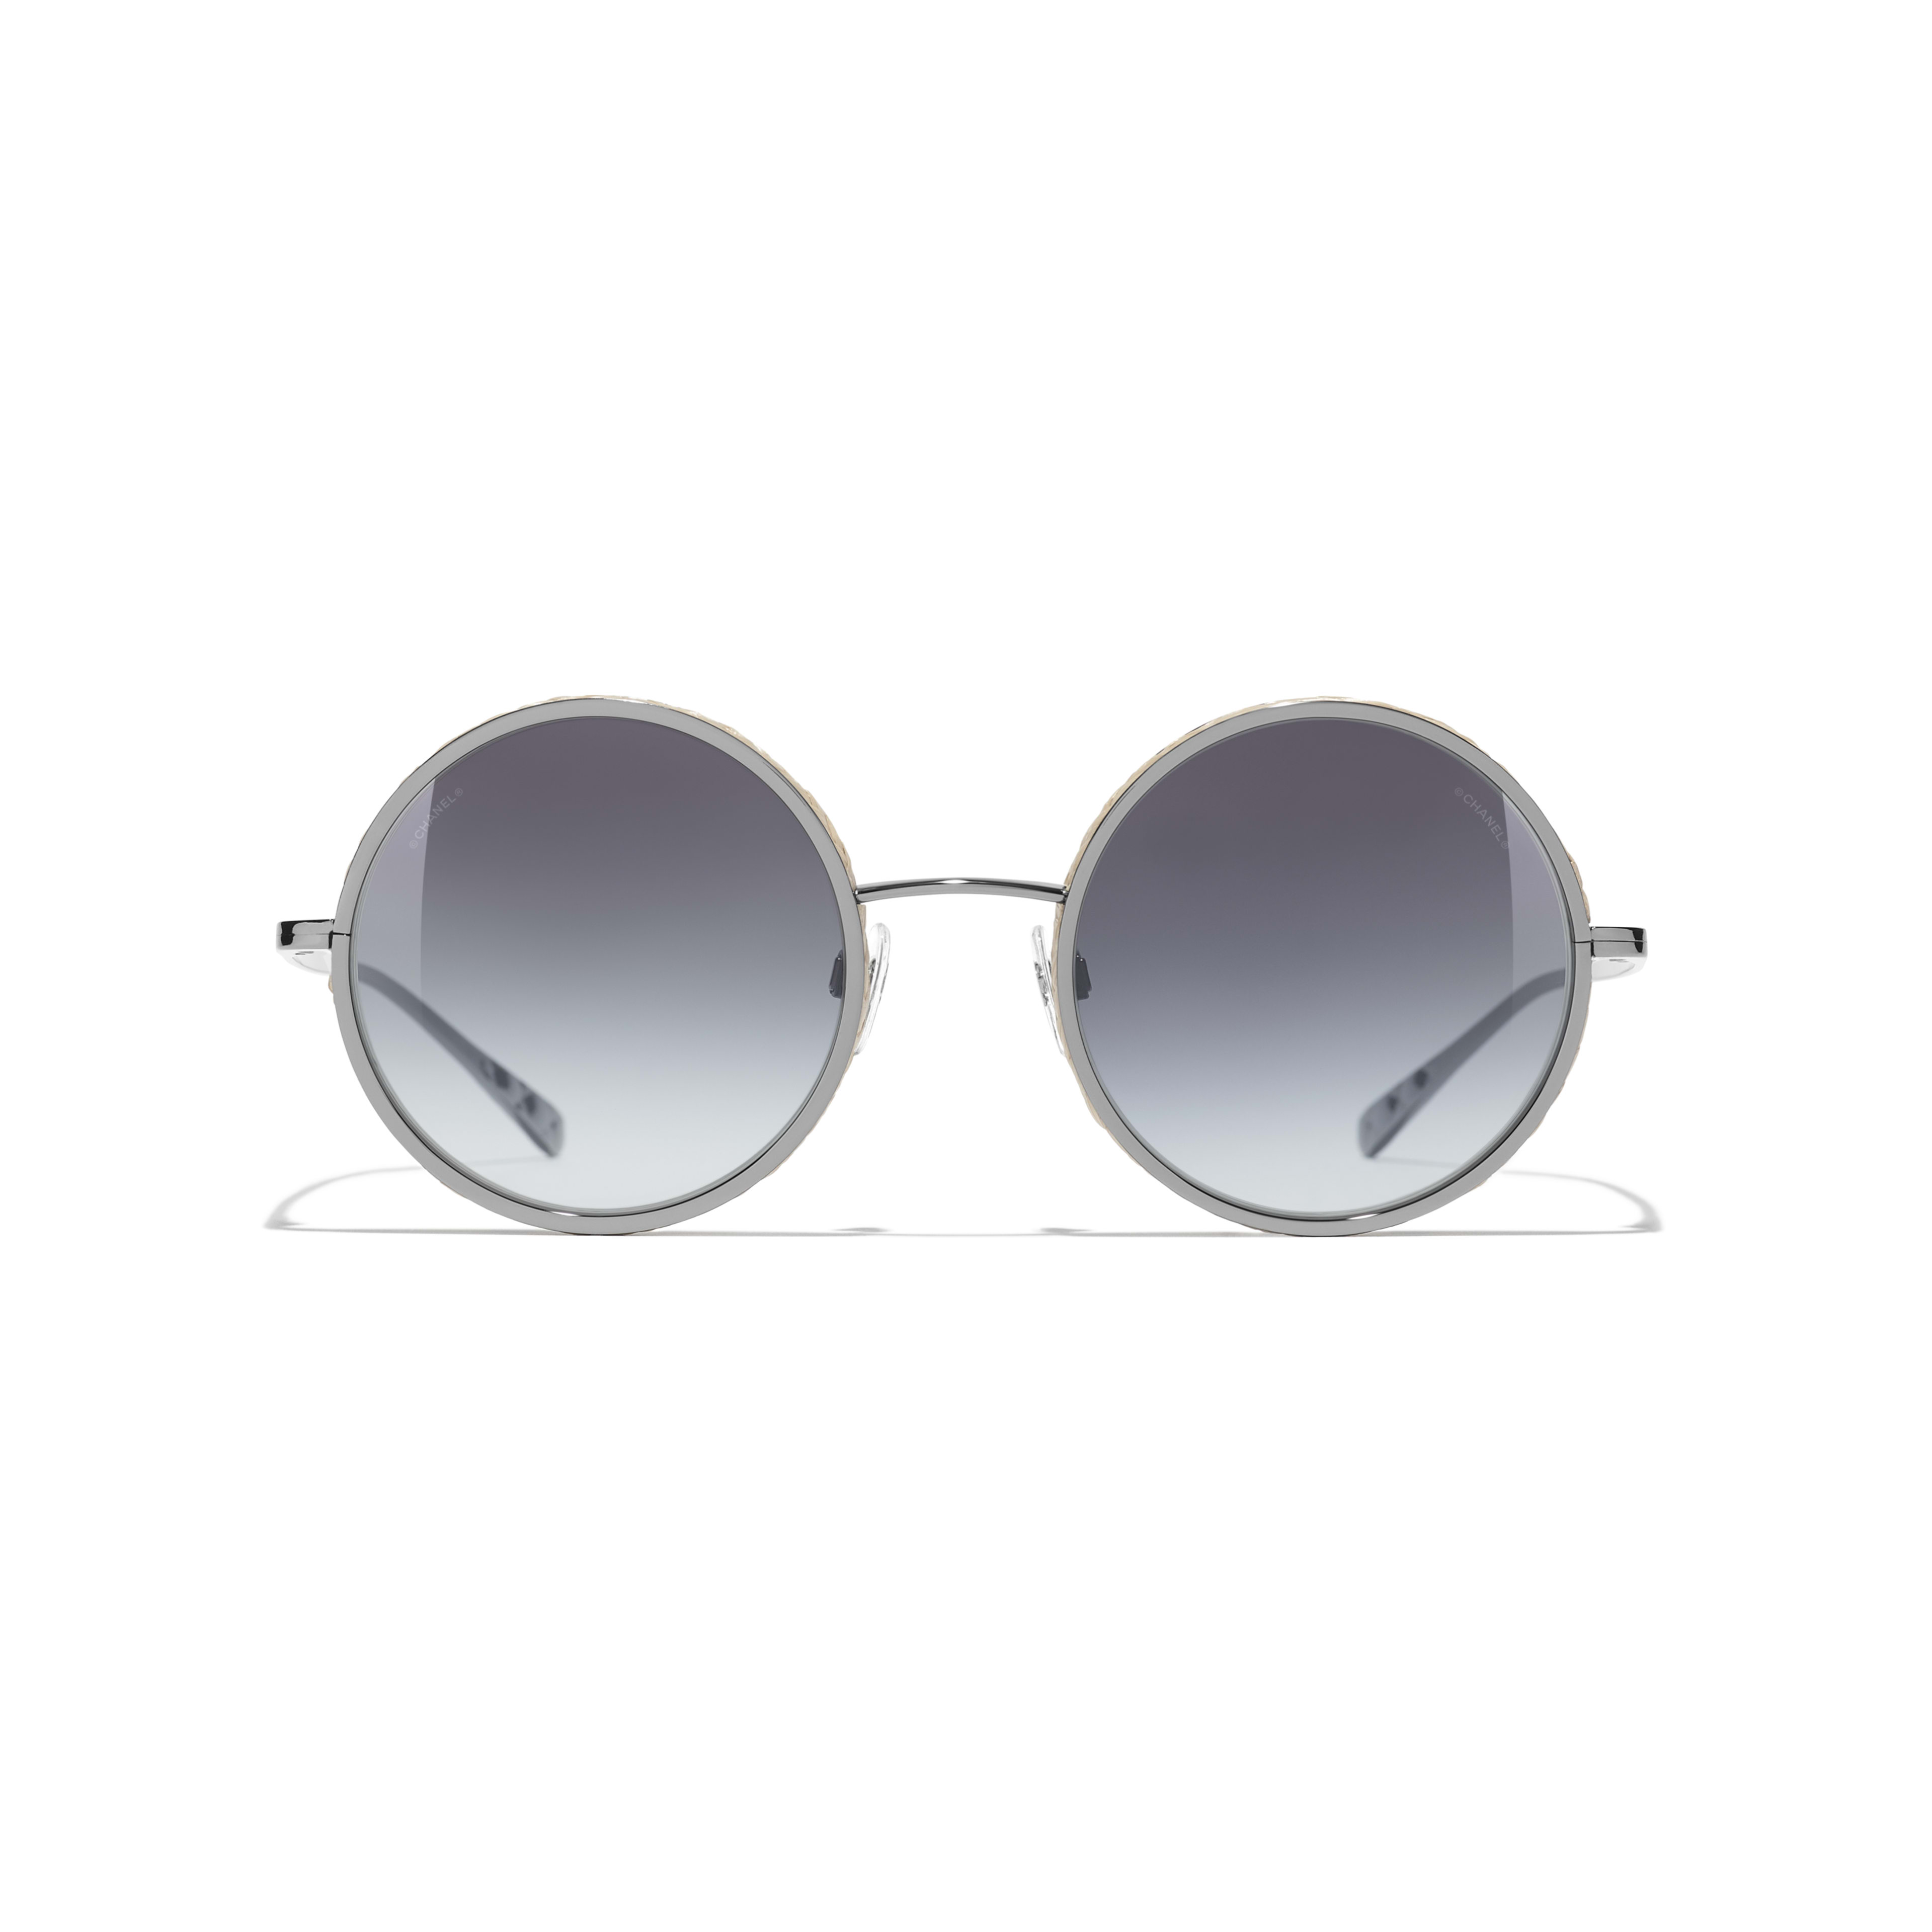 Round Sunglasses - Dark Silver - Metal & Rope - Alternative view - see full sized version